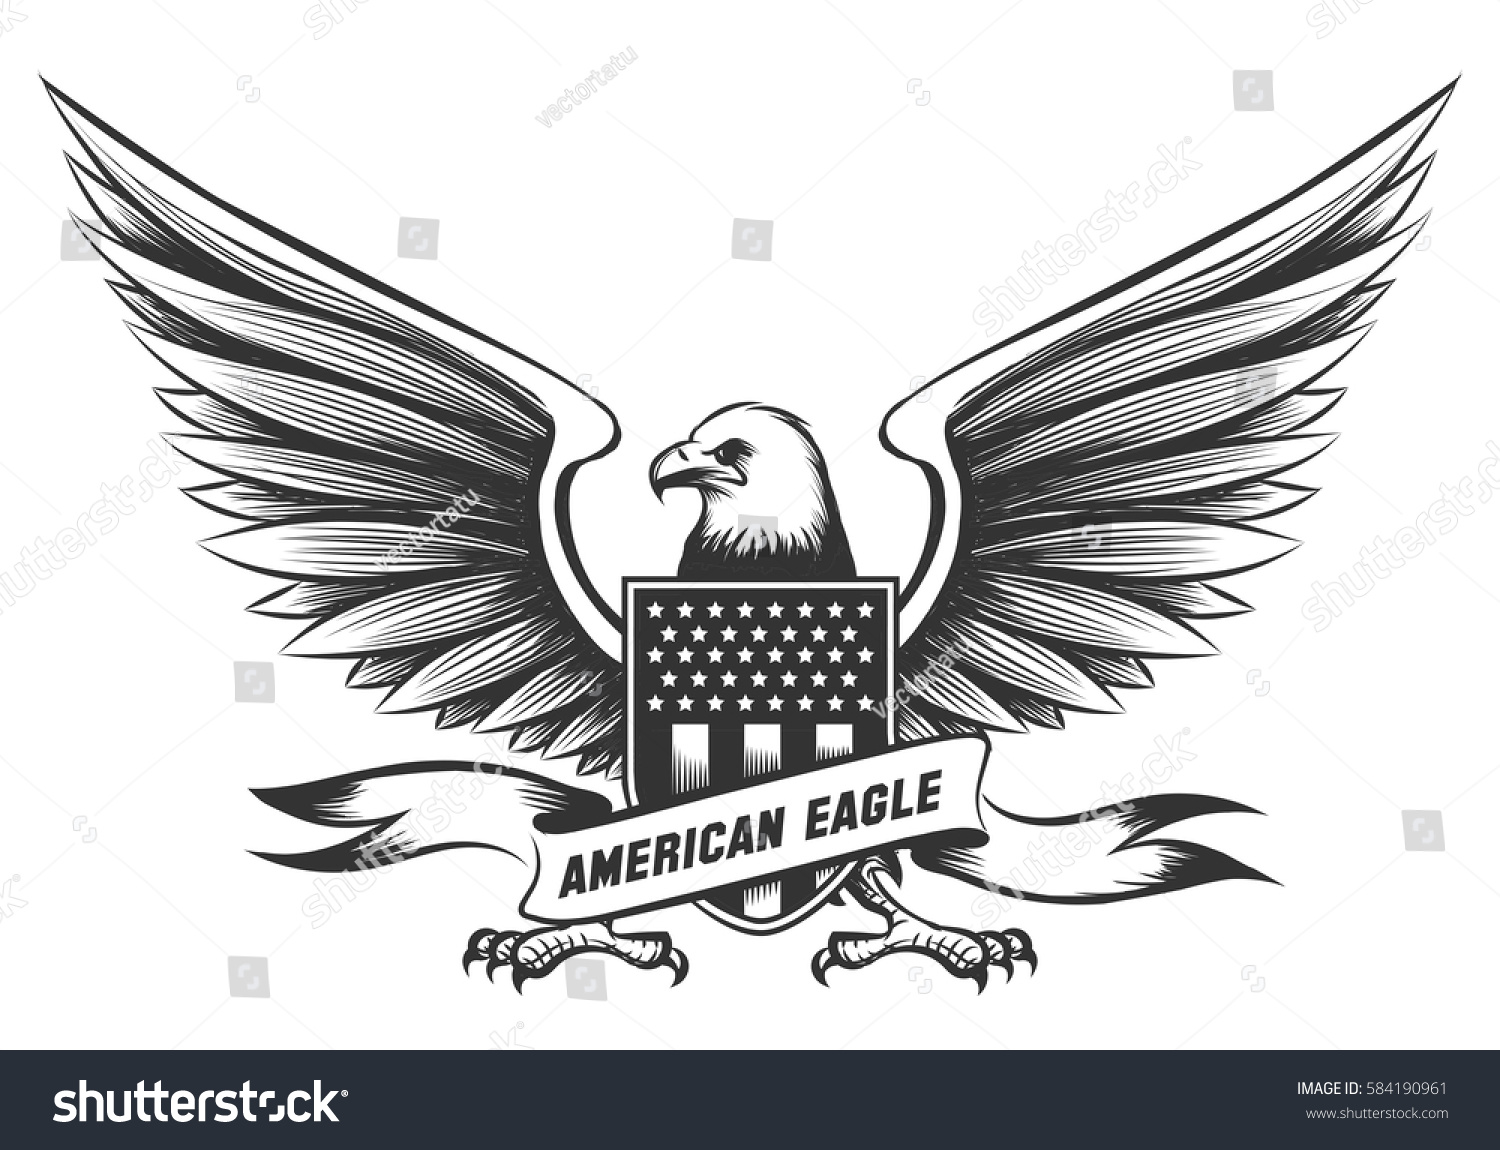 Native american eagle symbol tattoo images for tatouage native american eagle symbol tattoo throughout american bald eagle emblem badge shield stock vector 584190961 biocorpaavc Gallery